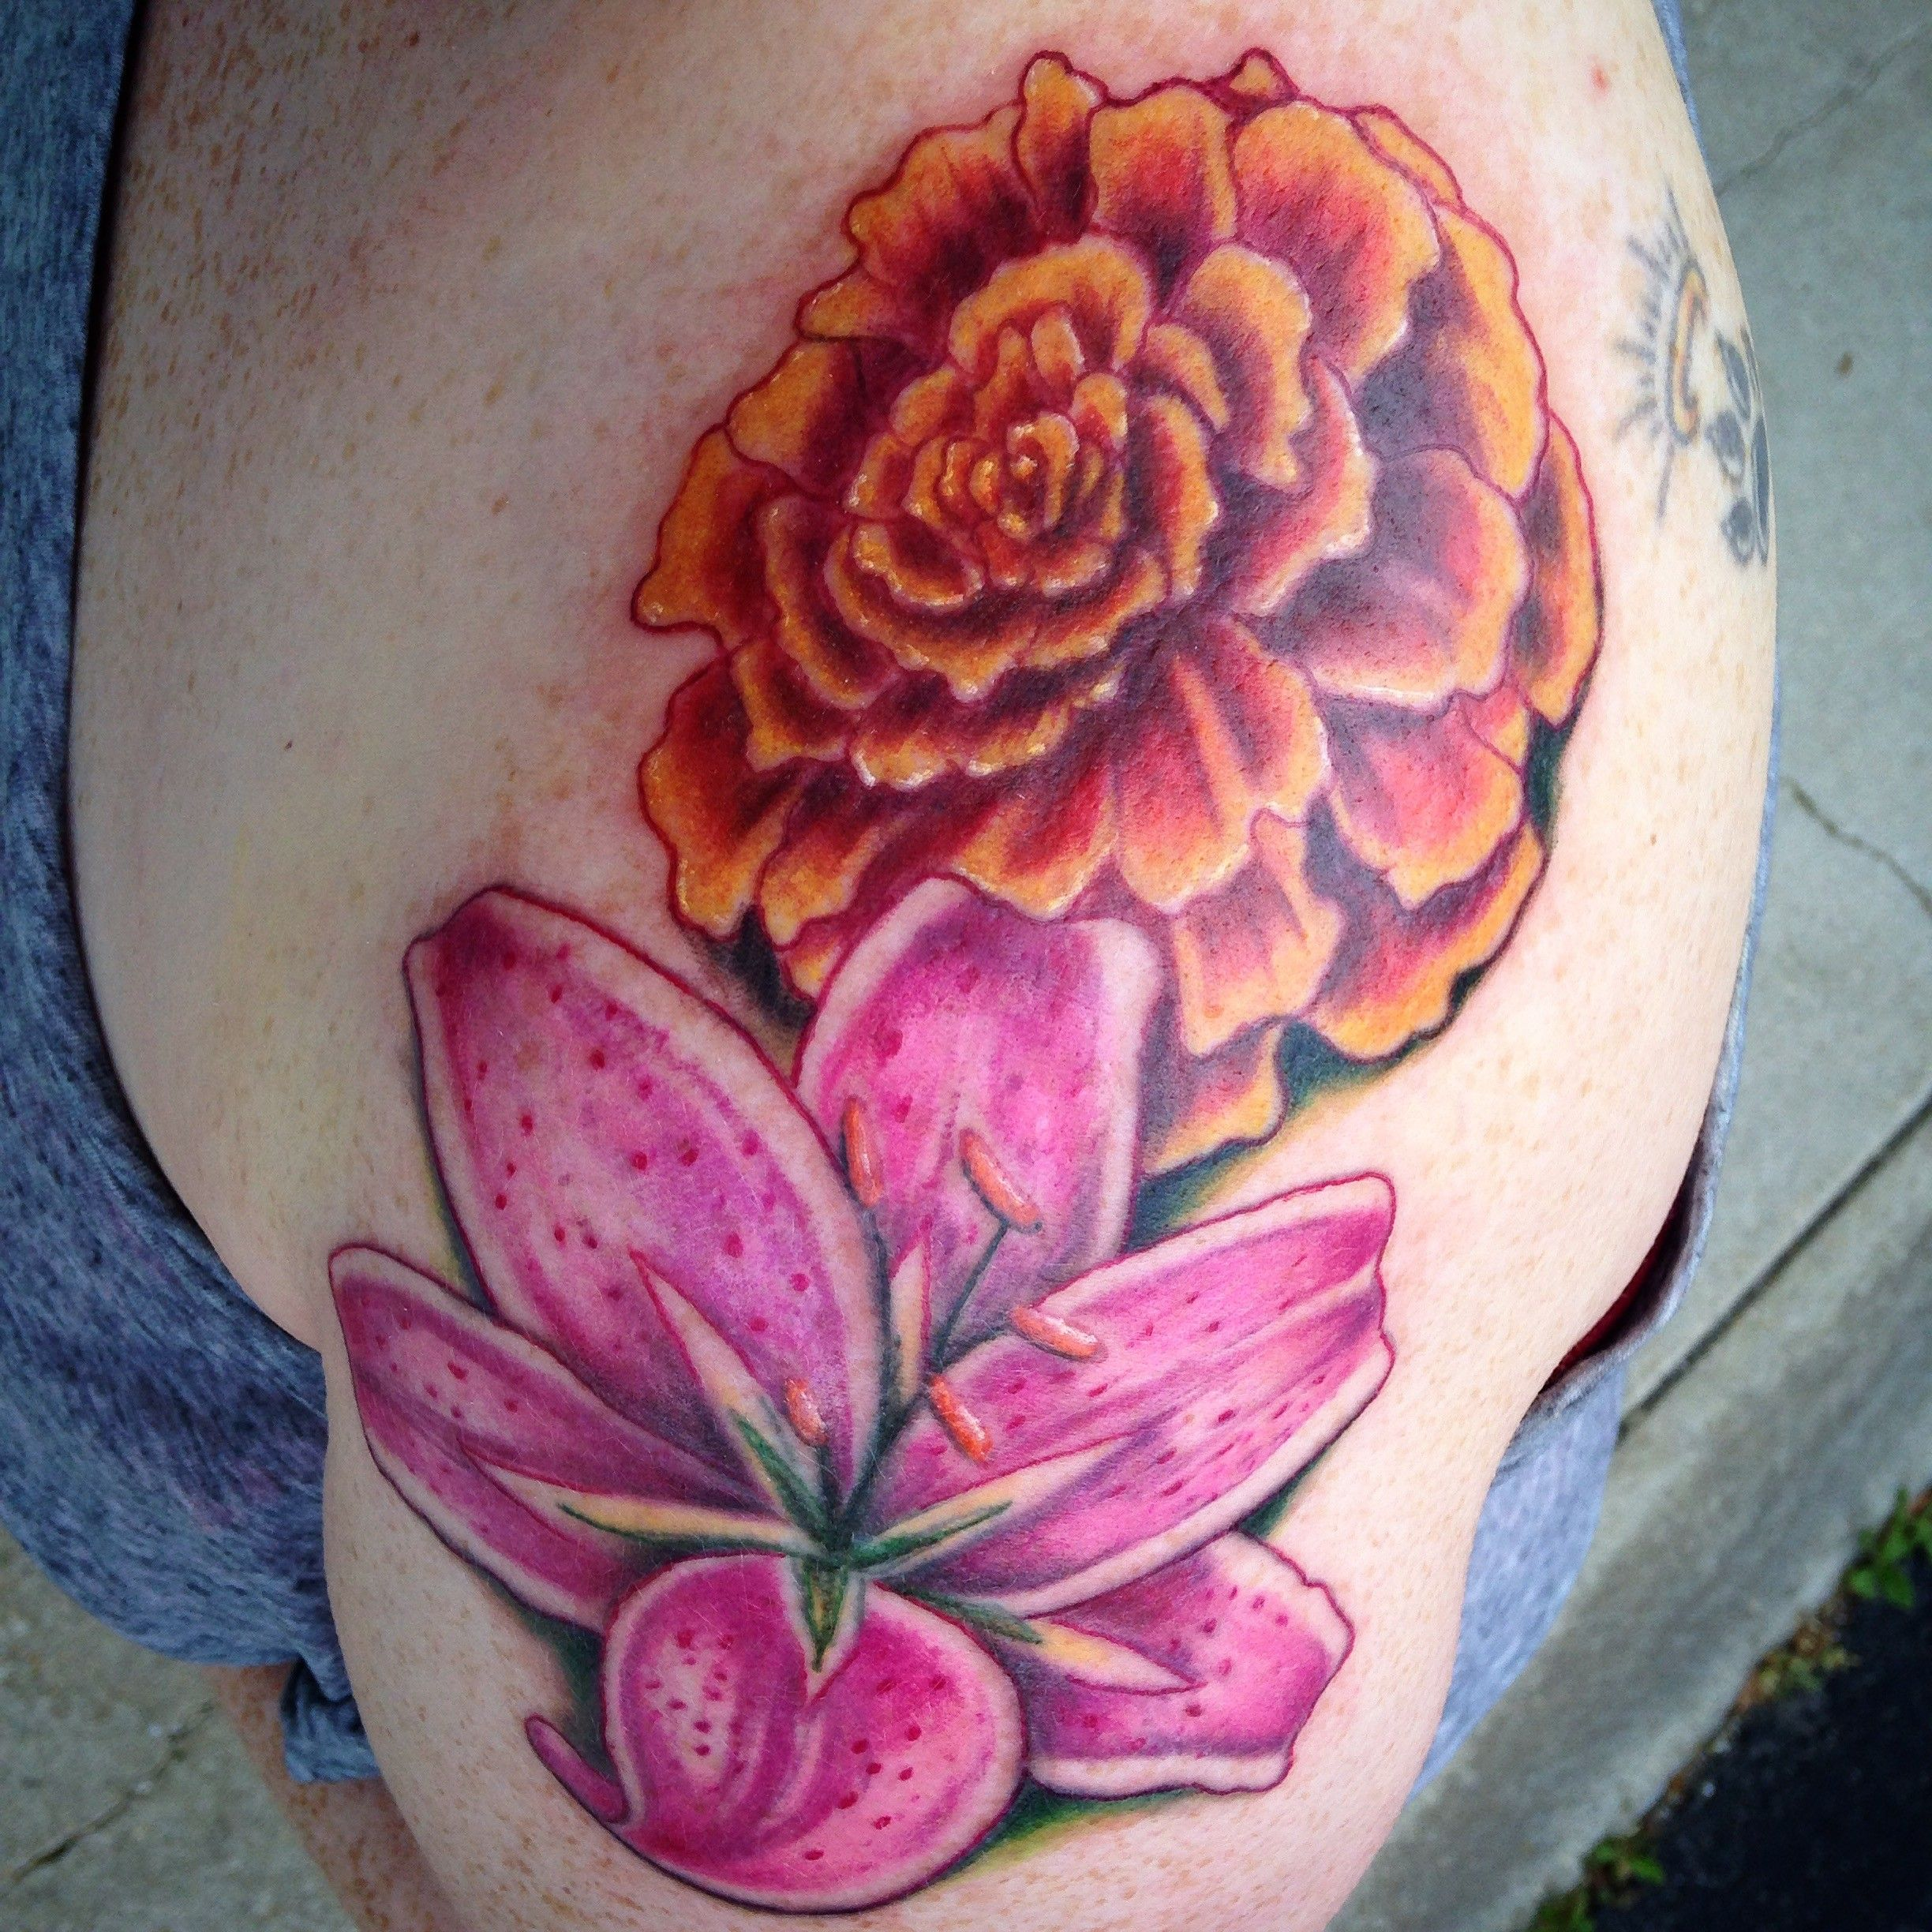 Marigold and lily flower tattoo by diane lange at moonlight tattoo marigold and lily flower tattoo by diane lange at moonlight tattoo seaville nj izmirmasajfo